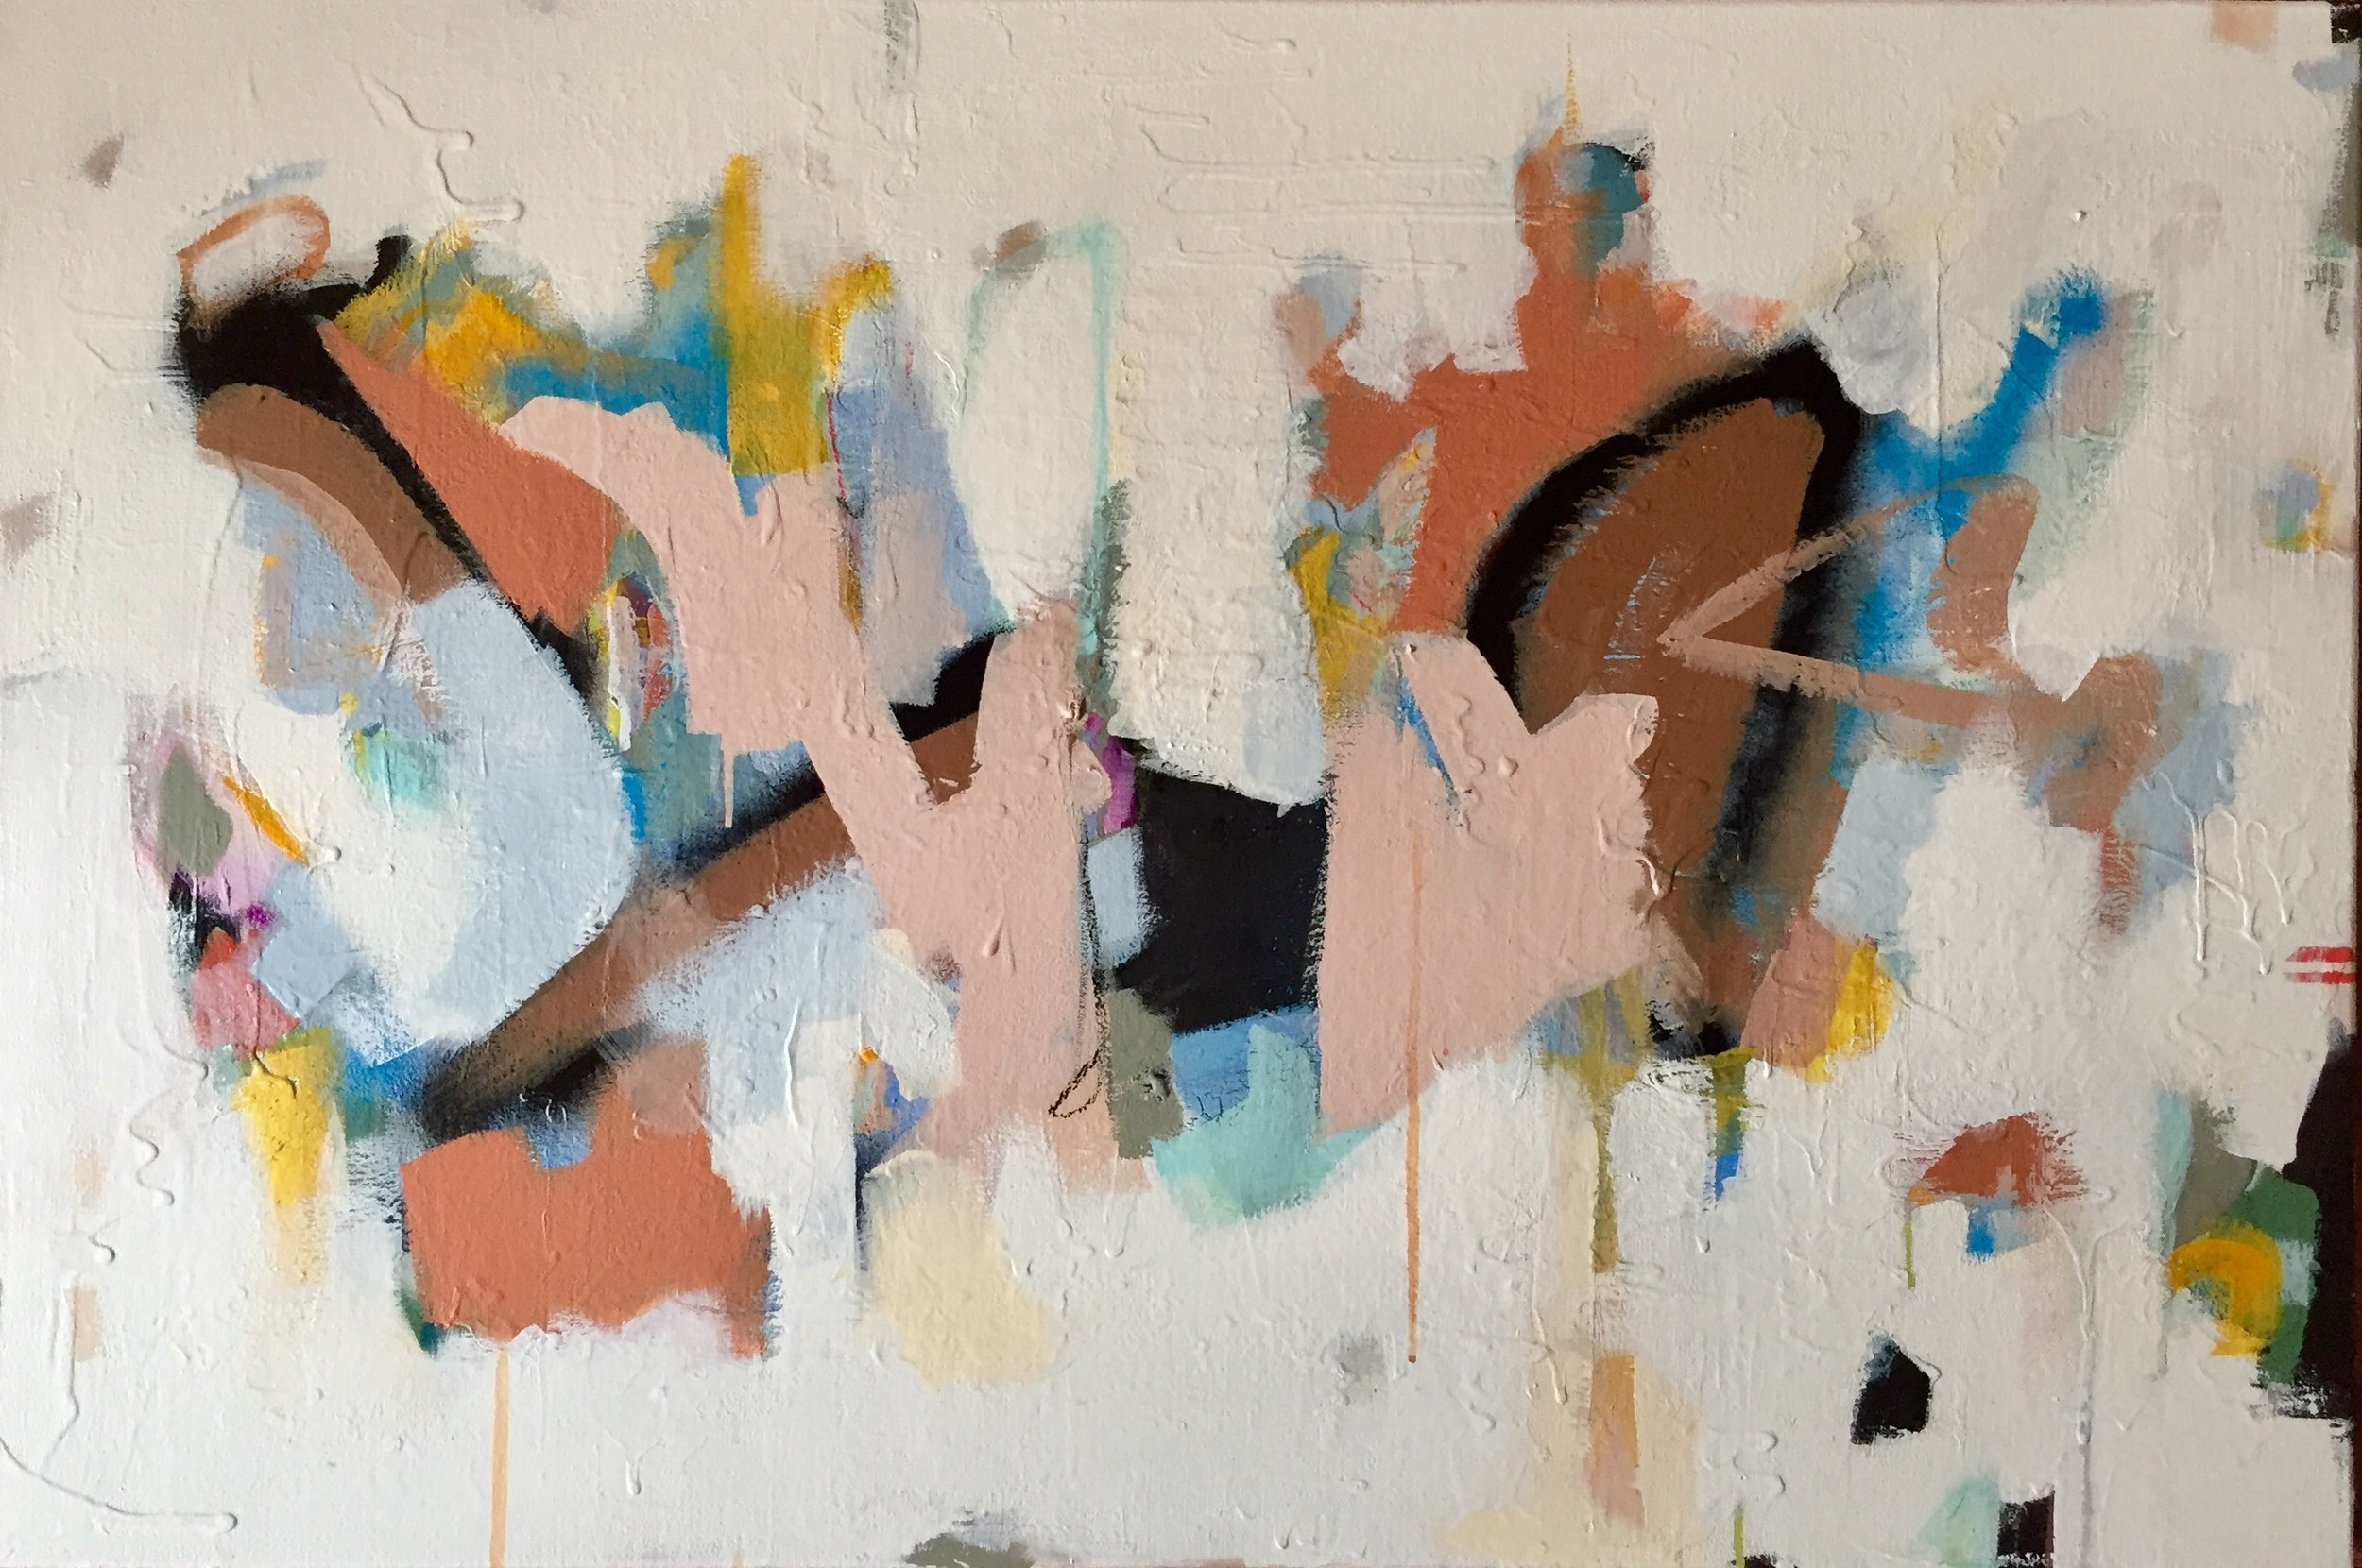 496, 24x36 in acrylic and charcoal on canvas.jpg